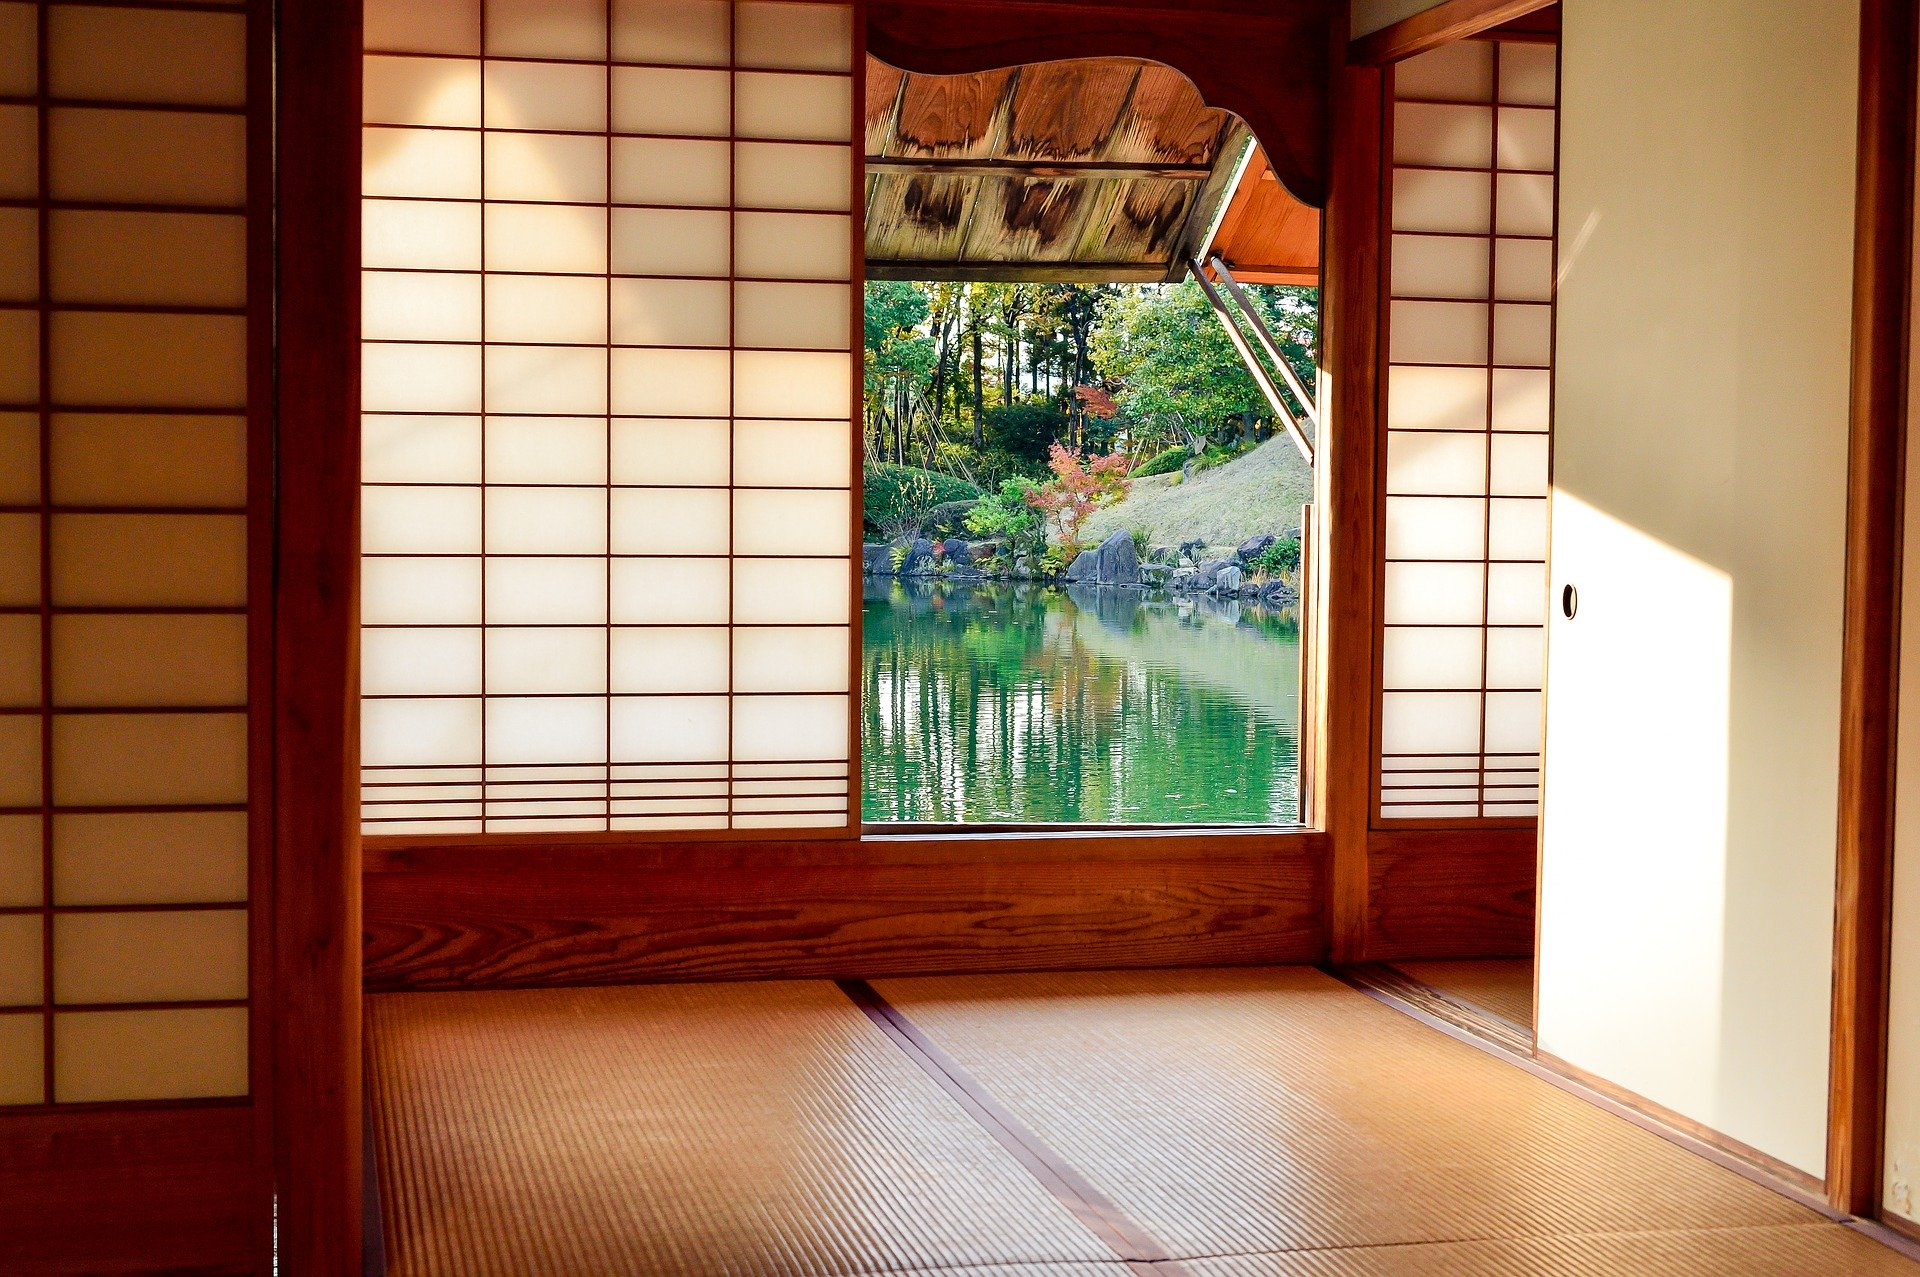 An open window of the tea house.